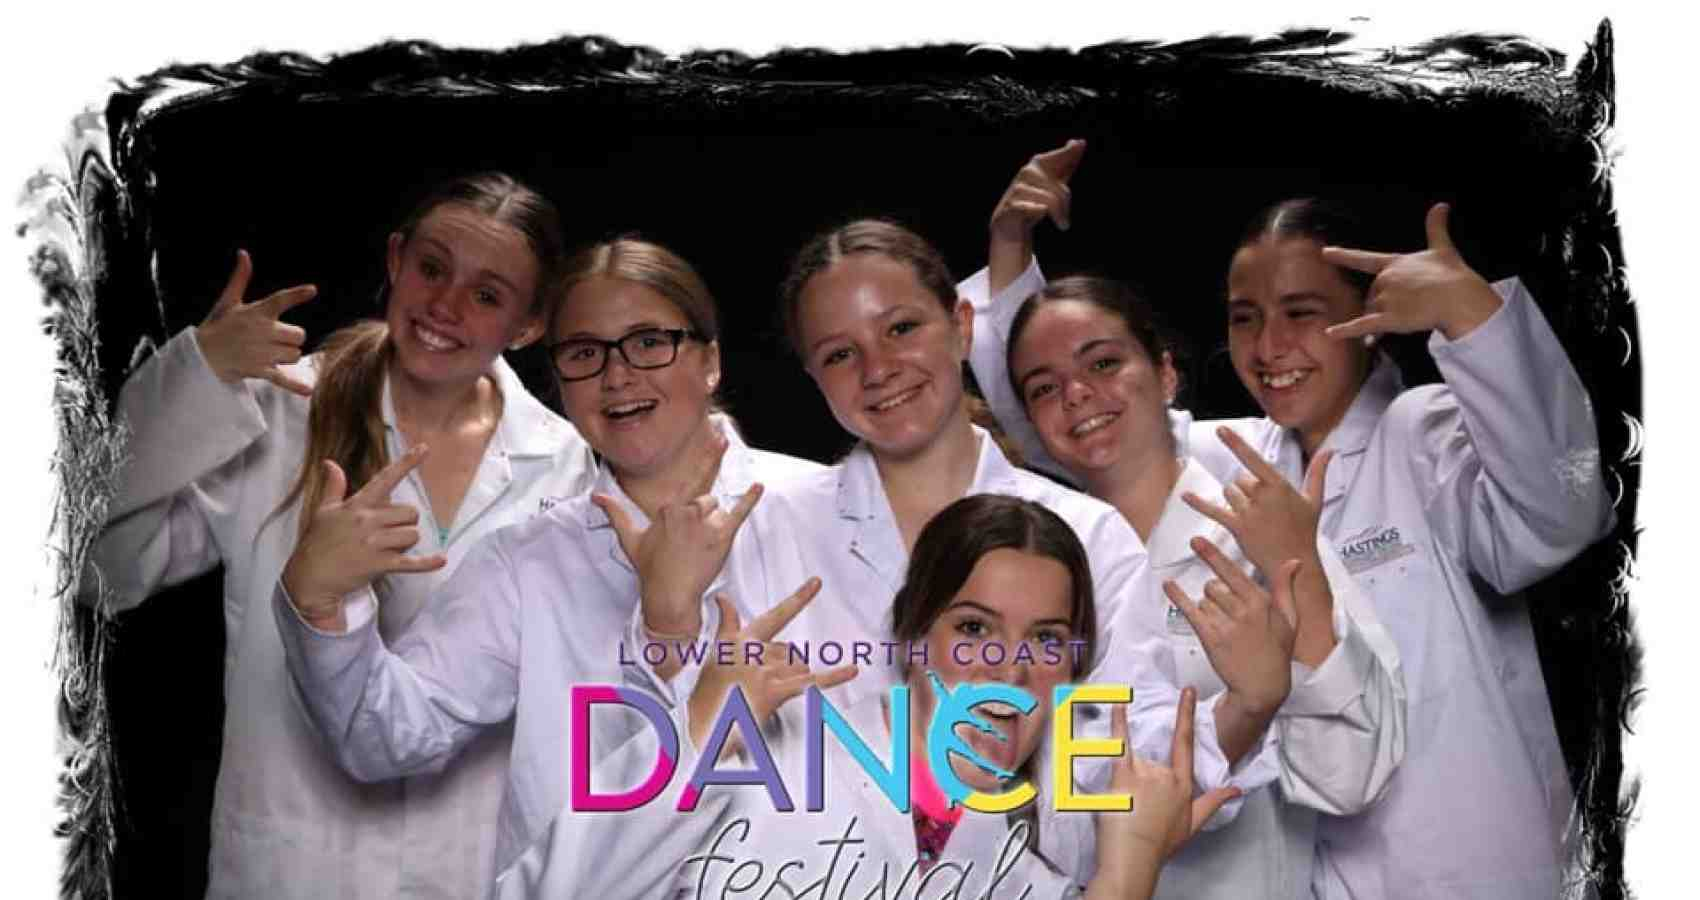 Lower North Coast Dance Festival